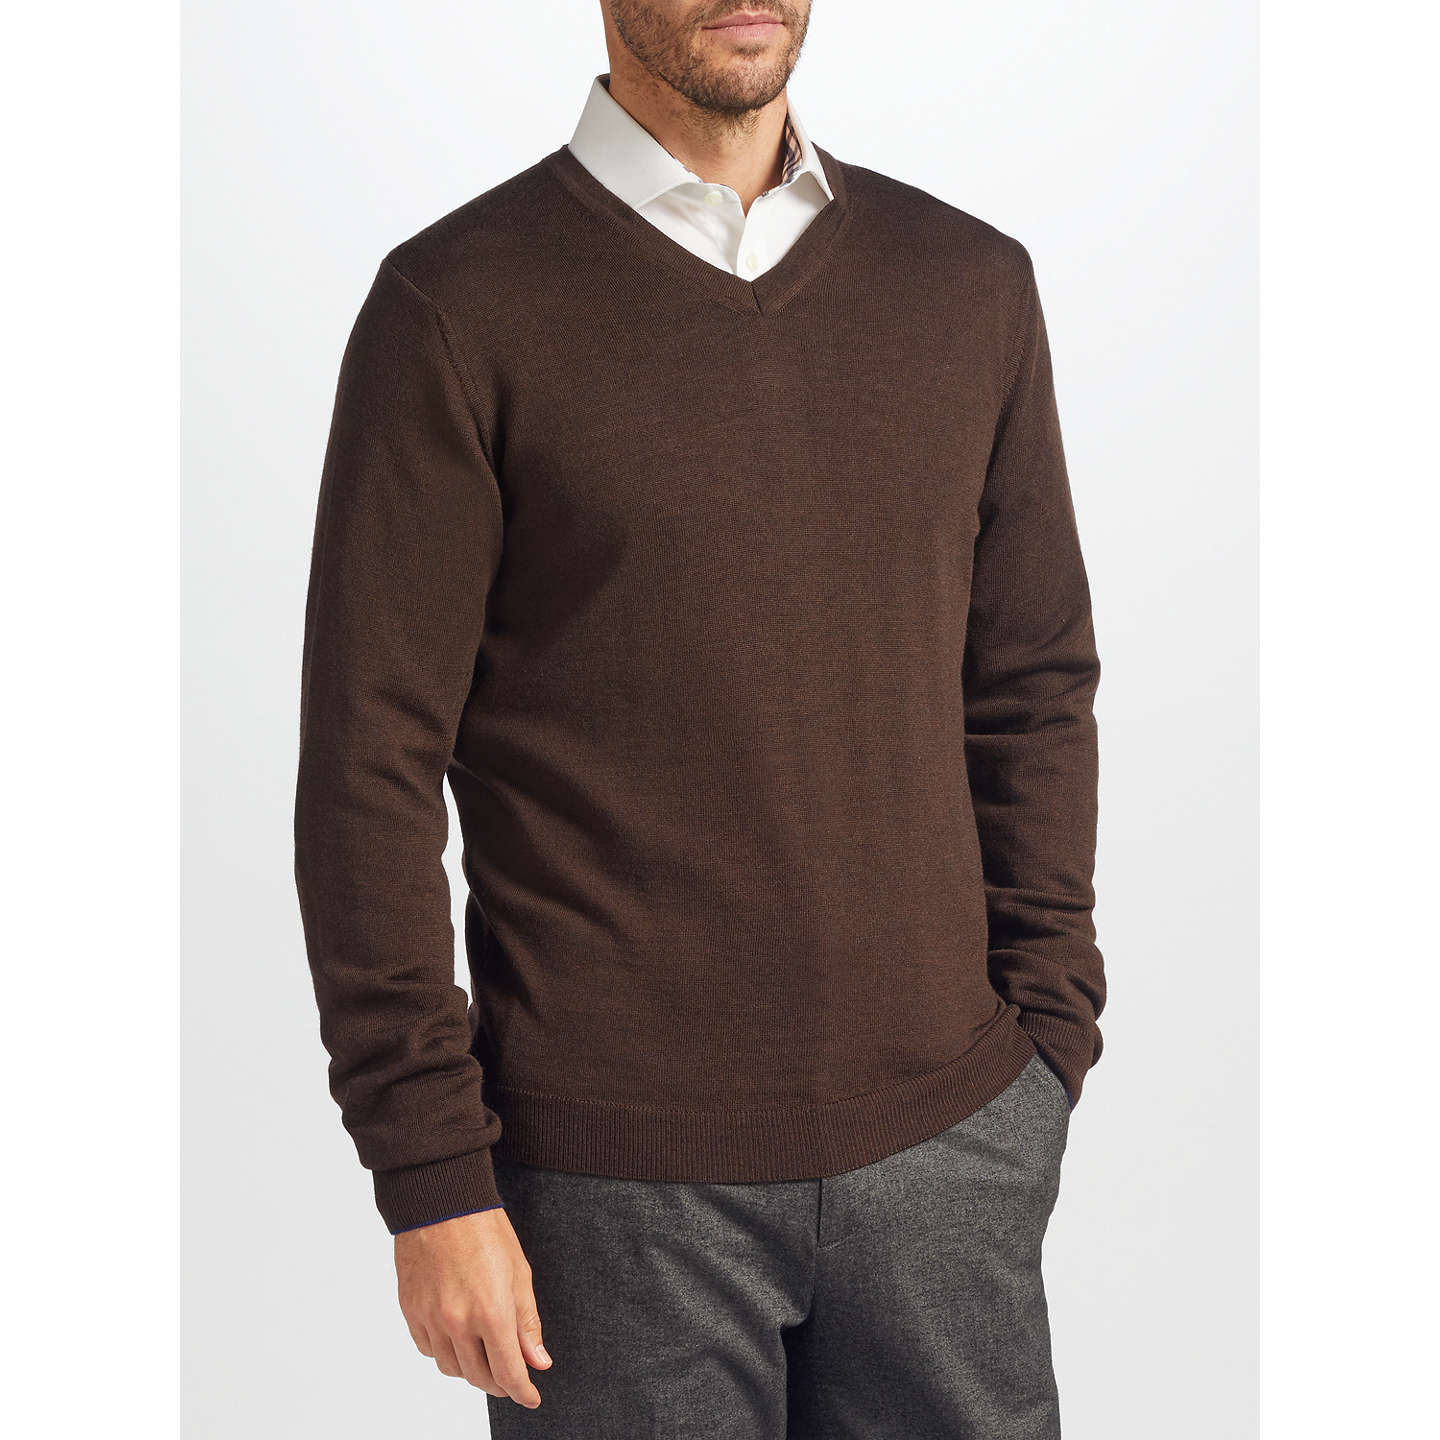 BuyJohn Lewis Made in Italy Merino Wool V-Neck Jumper, Brown, S Online at johnlewis.com